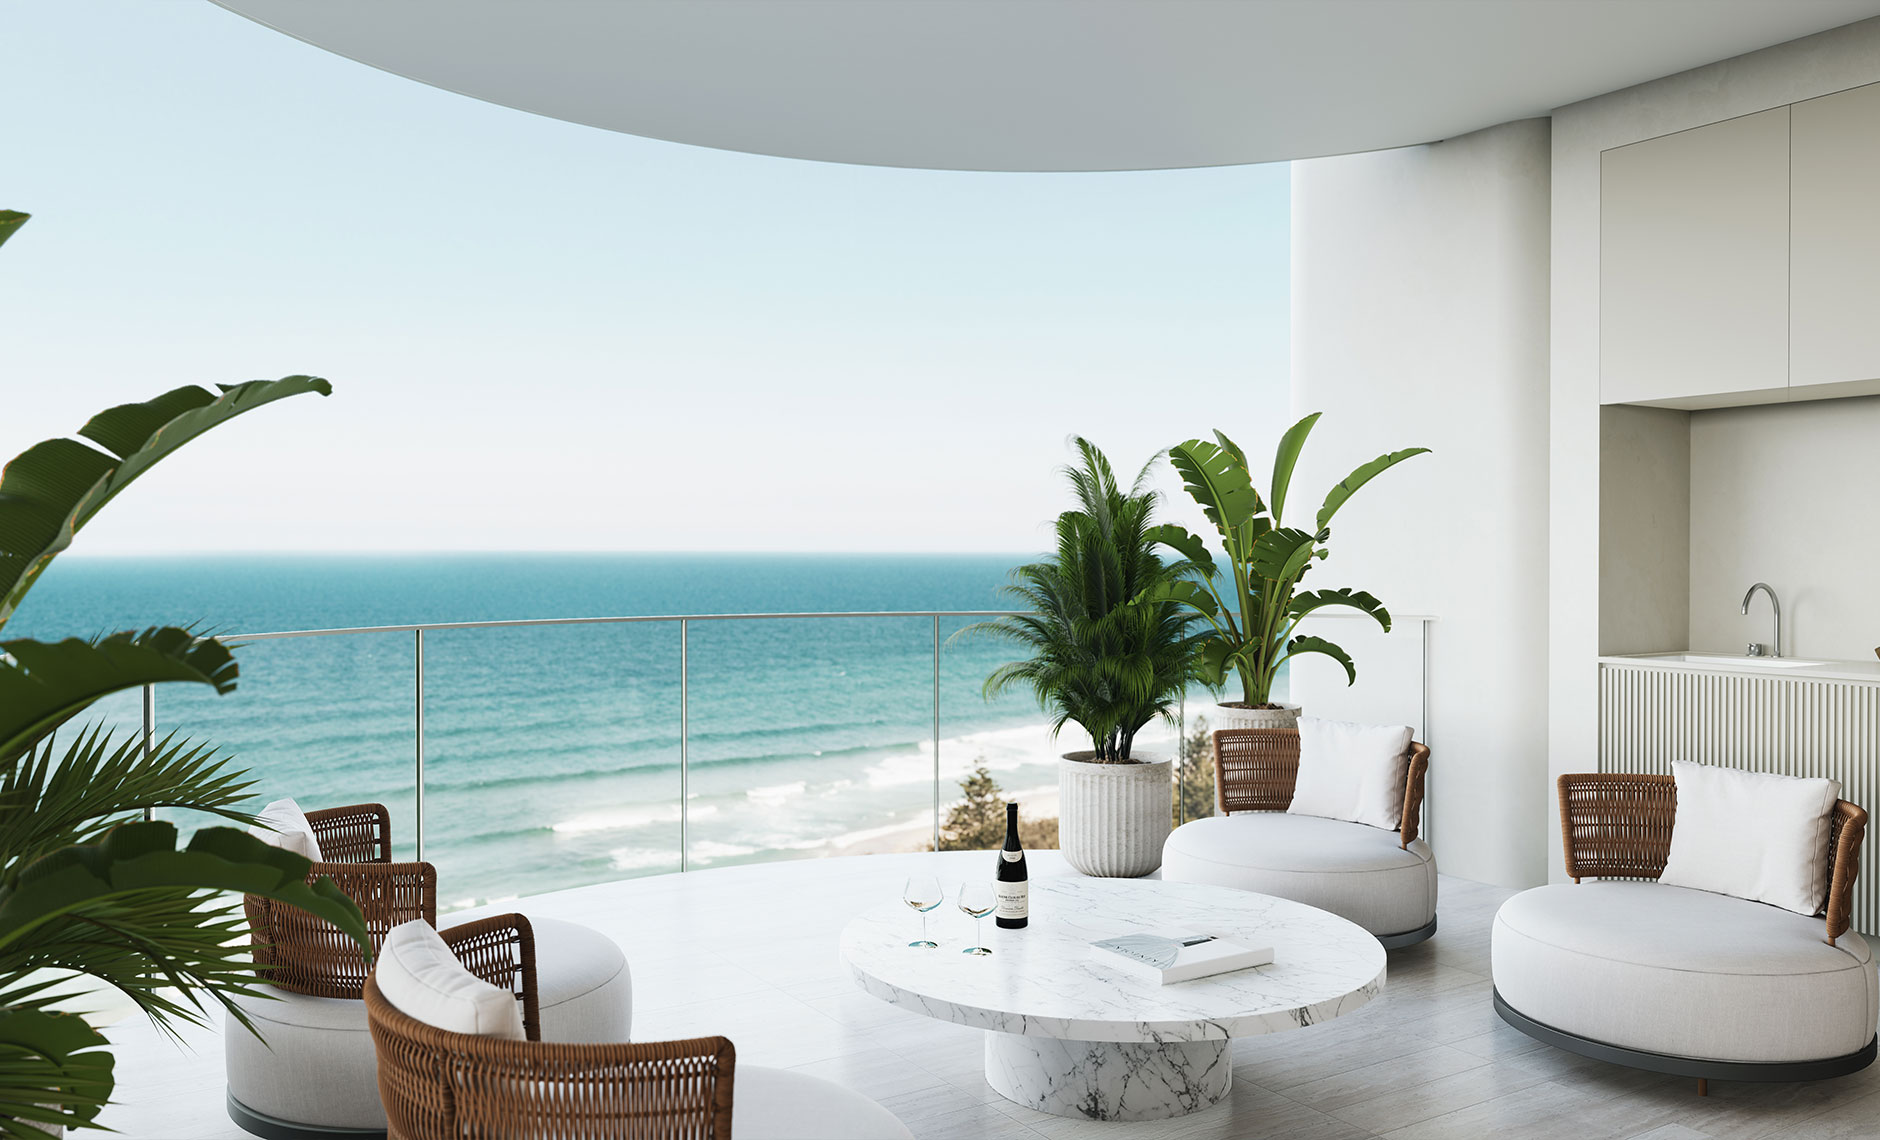 Interiors project in Main Beach, Gold Coast QLD